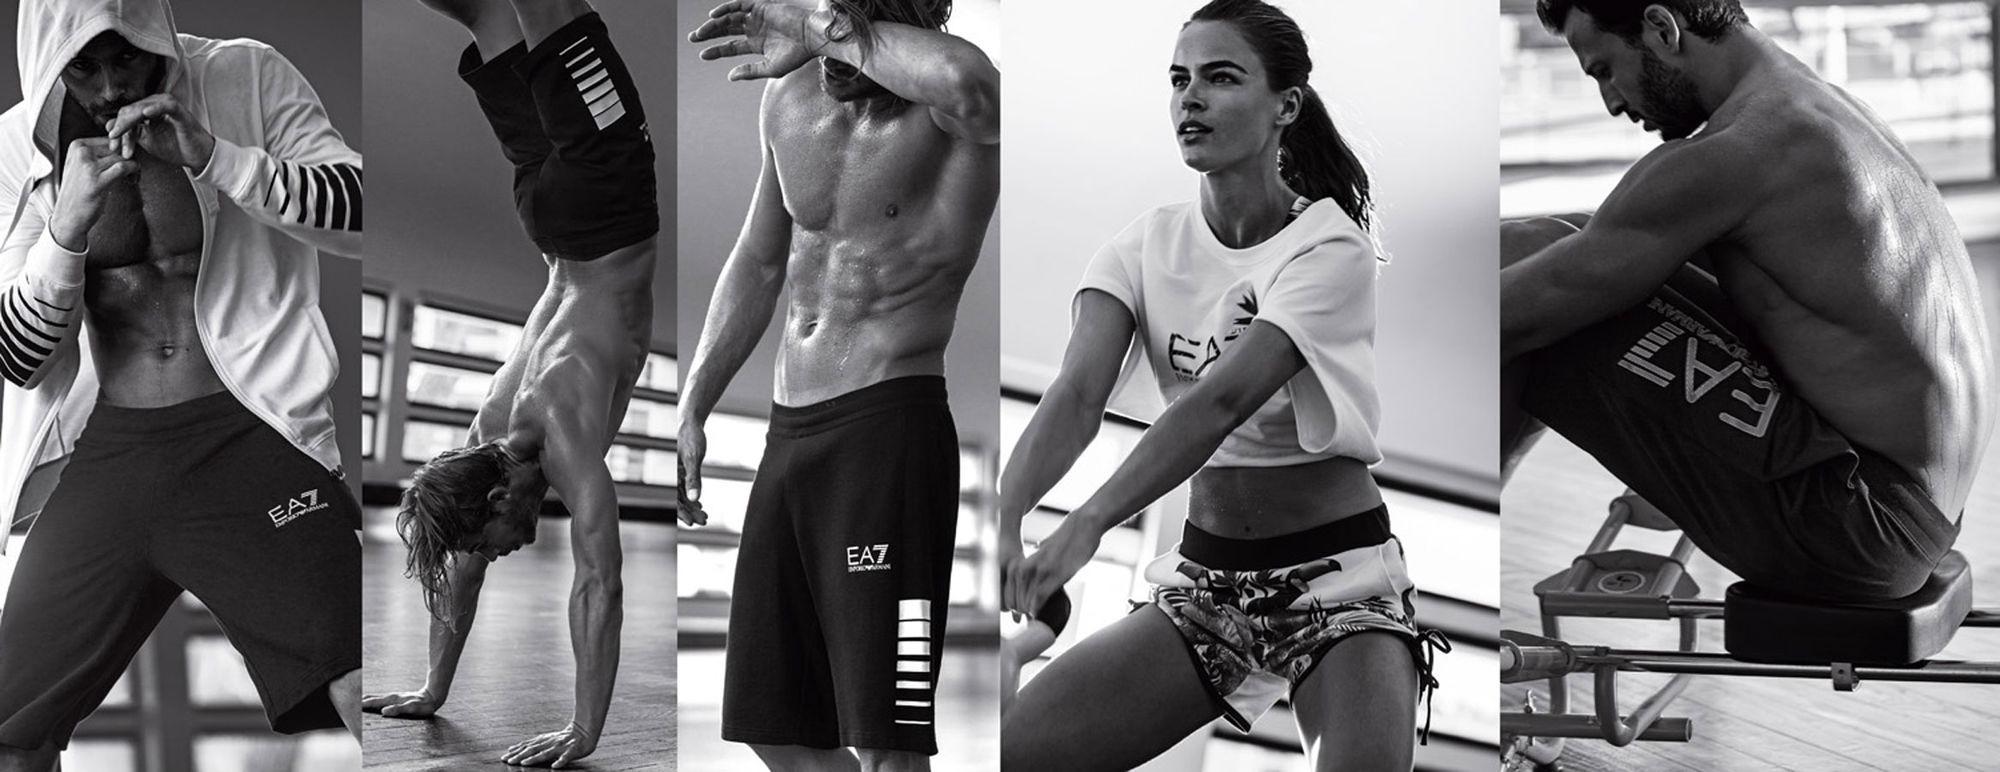 Armani Sports Summer 2017 by Serge Guerand c/o KLEIN PHOTOGRAPHEN